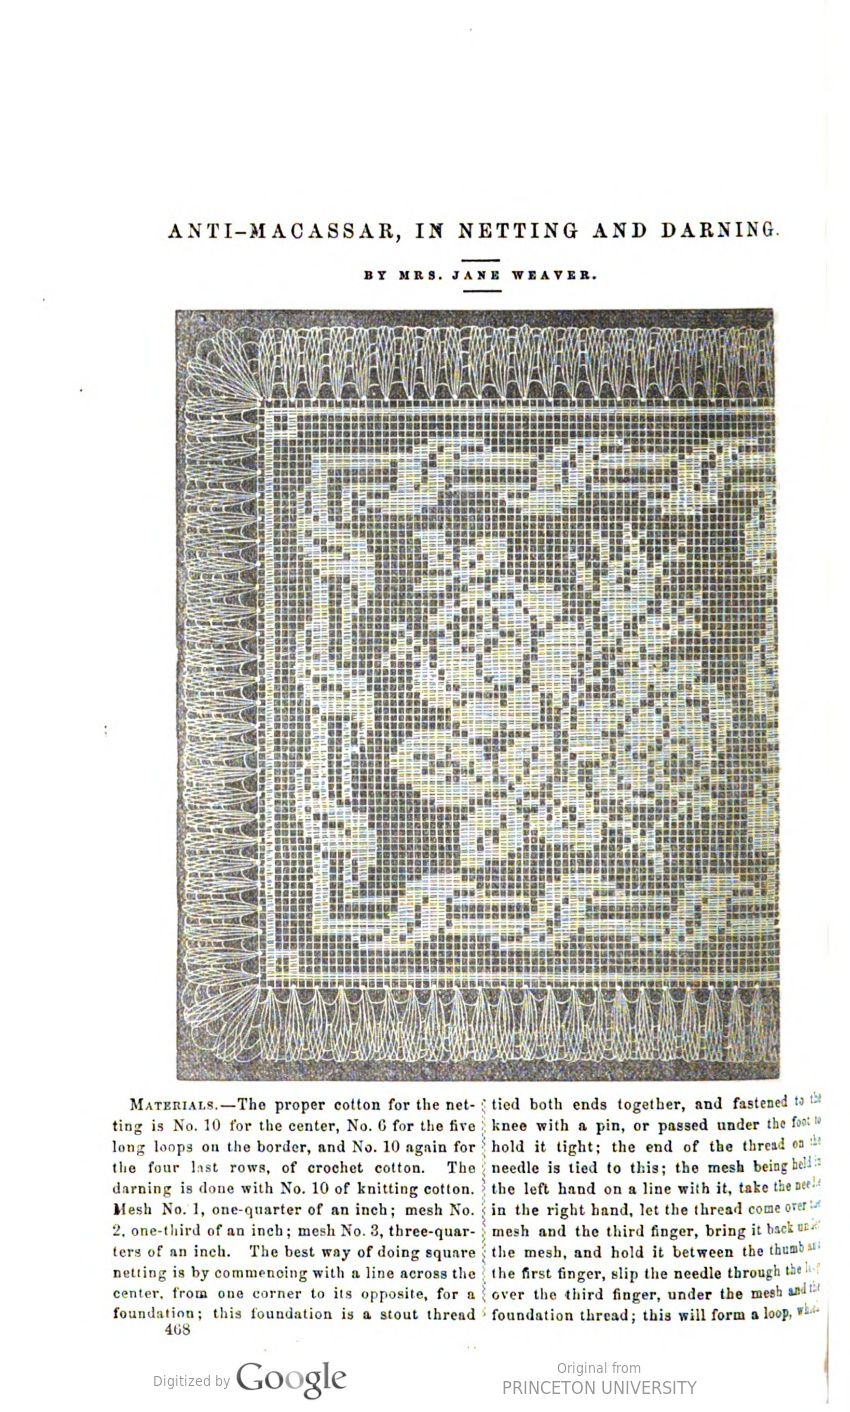 Image of page antimacassar in netting and darning petersonus